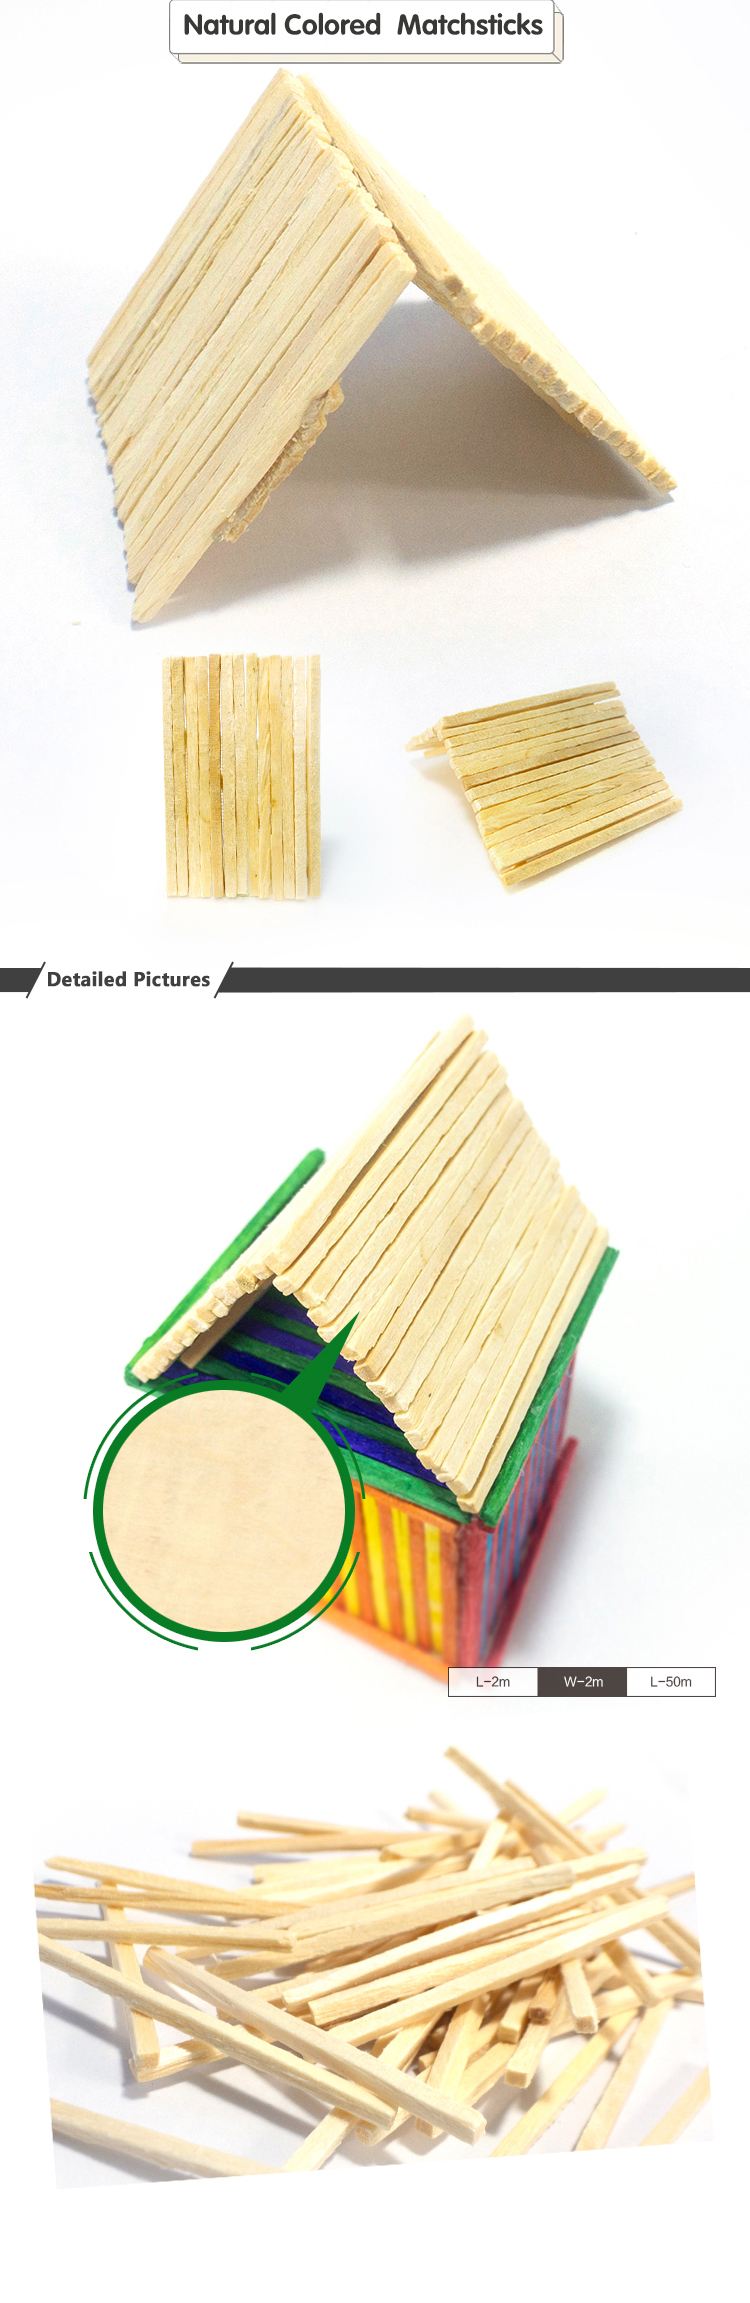 2019 Cheap Wholesale Multiple Eco-Friendly Quality Diy Colorful Craft Wooden Match Sticks